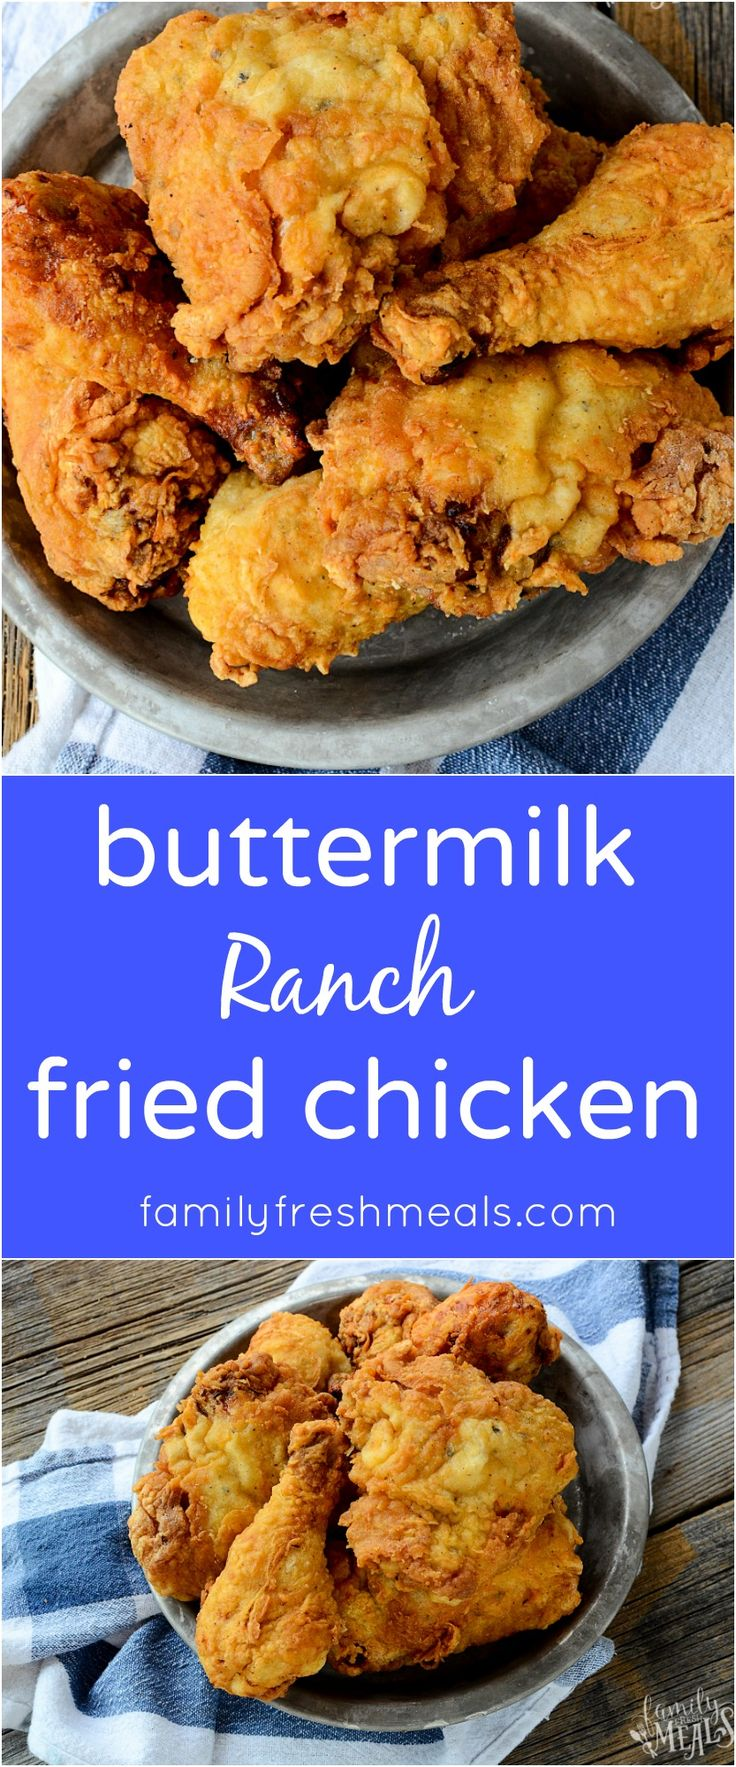 The Best Buttermilk Ranch Chicken Recipe - familyfreshmeals.com - The family loves this blue ribbon recipe!